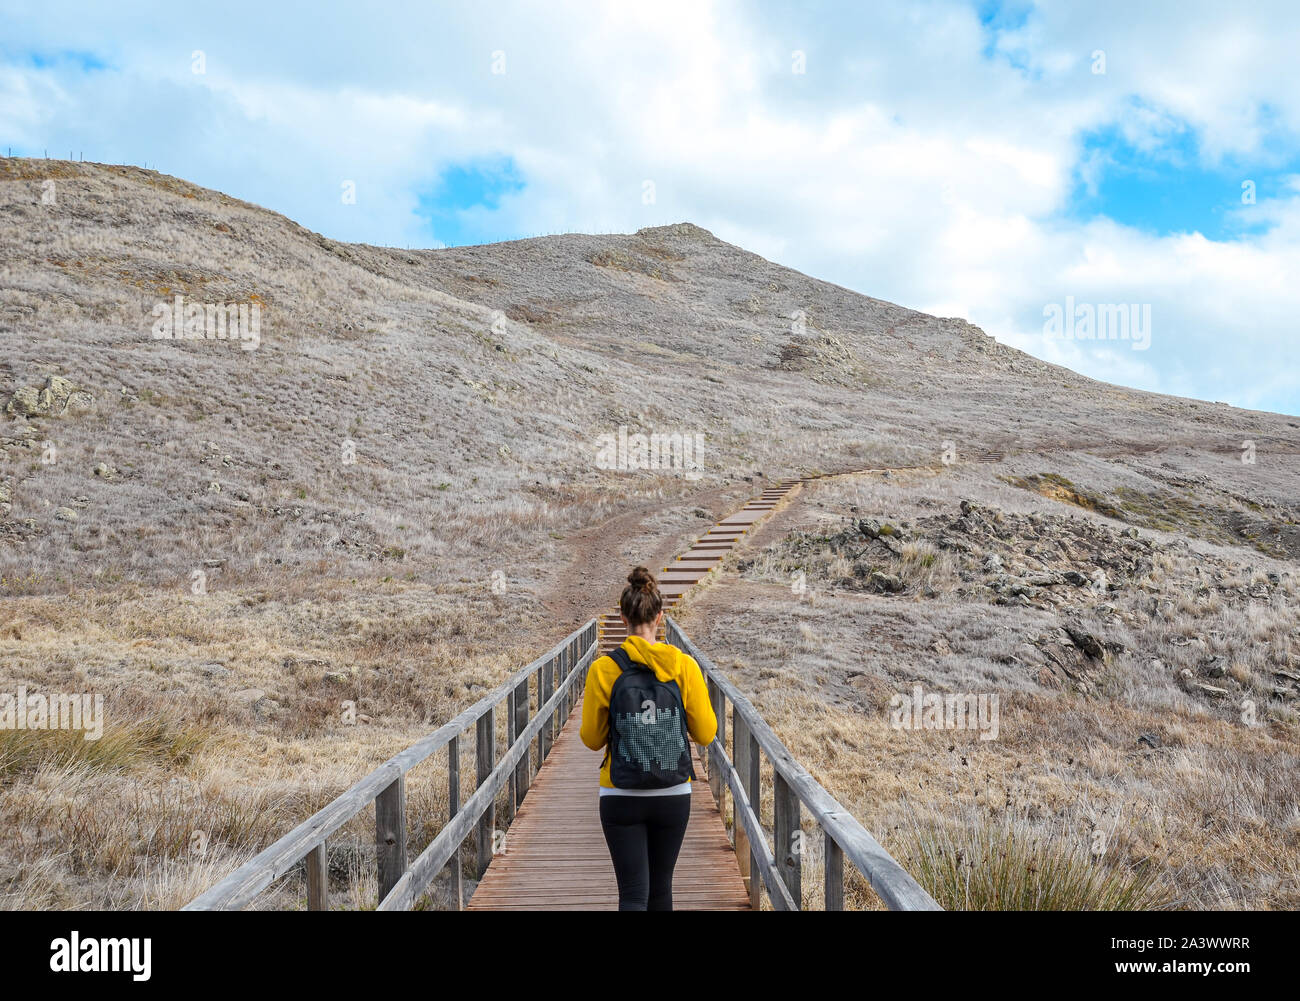 Young girl in yellow sweater on hiking path in Ponta de Sao Lourenco in Madeira, Portugal. Peninsula in eastern part of the island. Volcanic landscape. Woman traveller. Adventure concept. Stock Photo